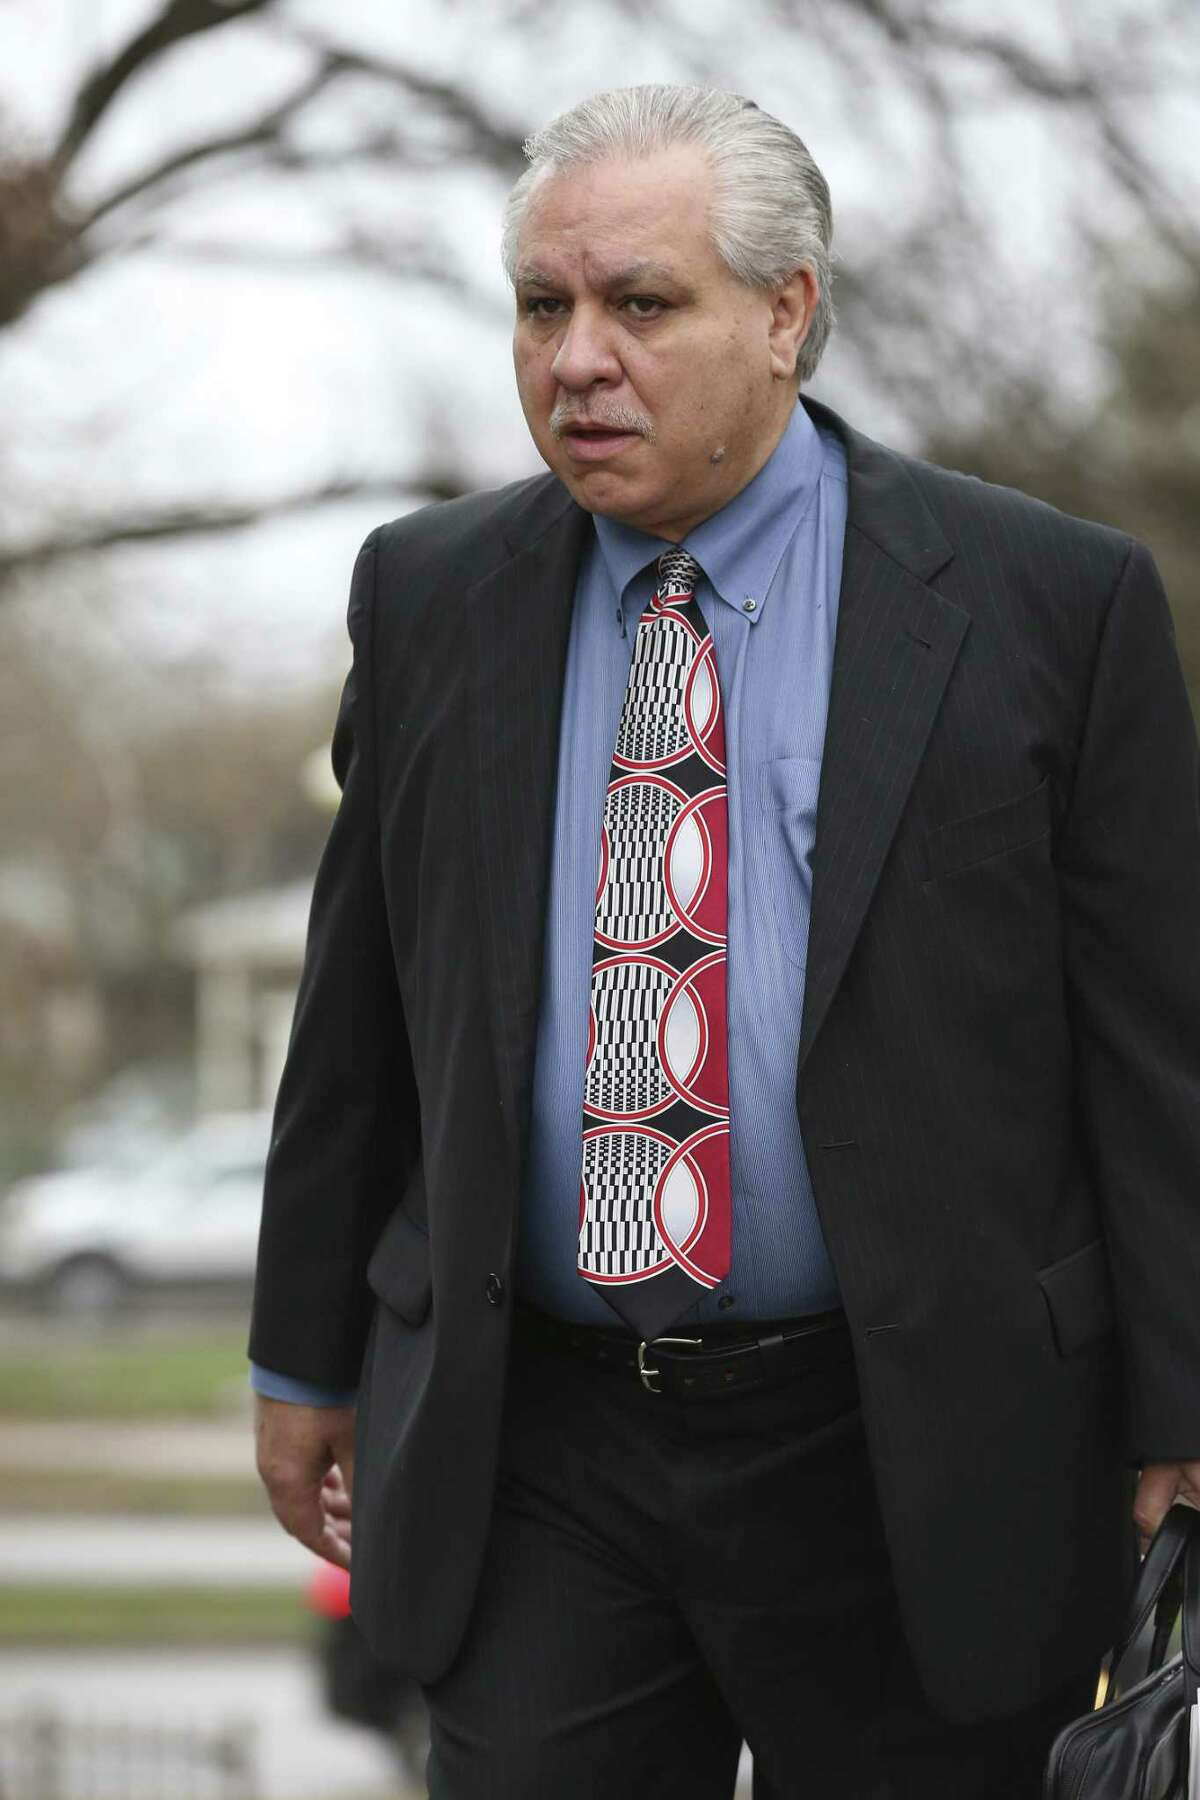 Businessman Gary Cain was sentenced to 68 months in federal prison after a jury convicted him of nine felonies last year. He has appealed his conviction.